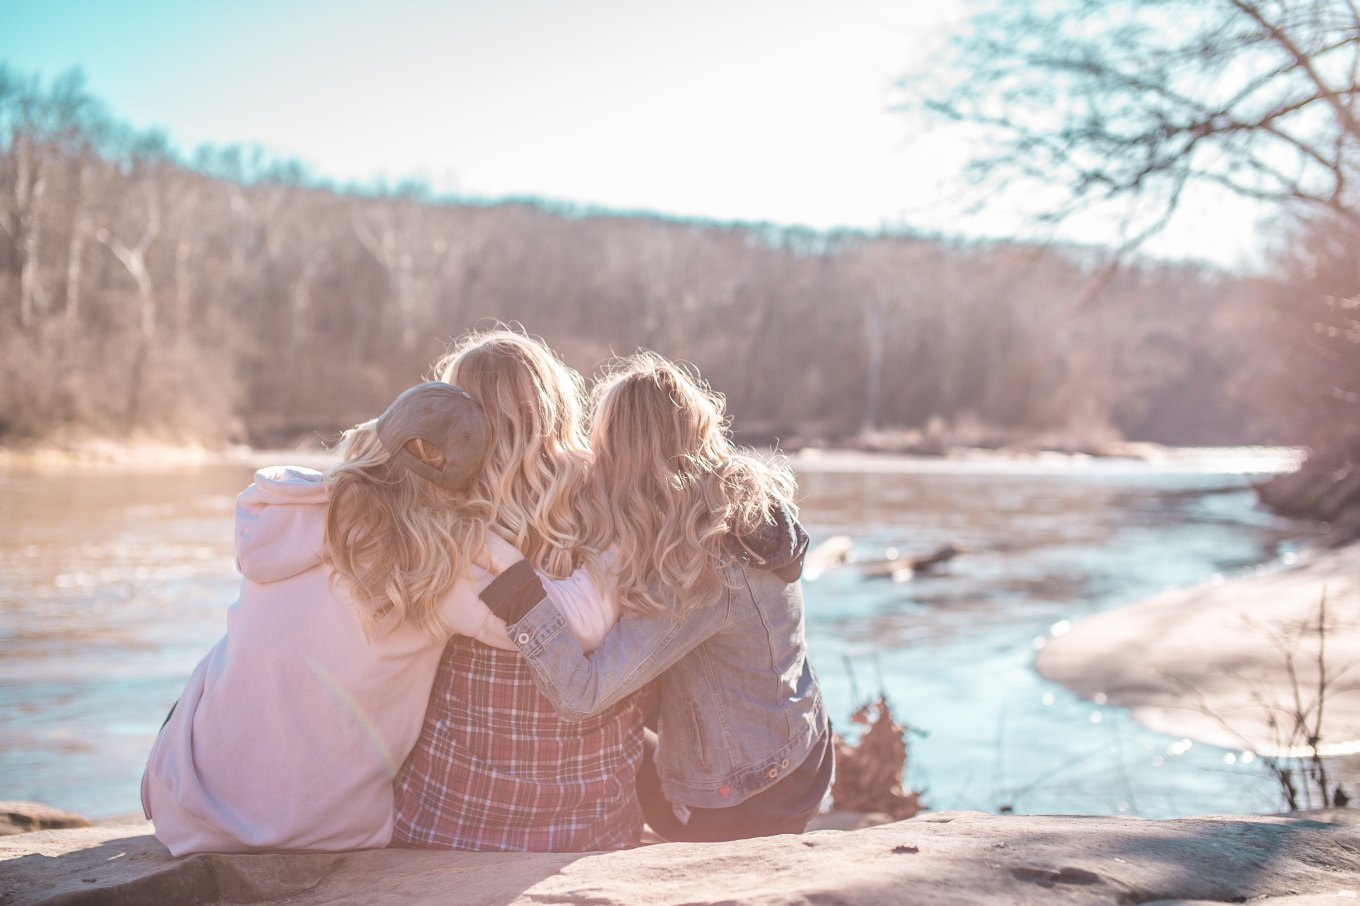 8-reasons-to-love-yourself-3(s)-unsplash